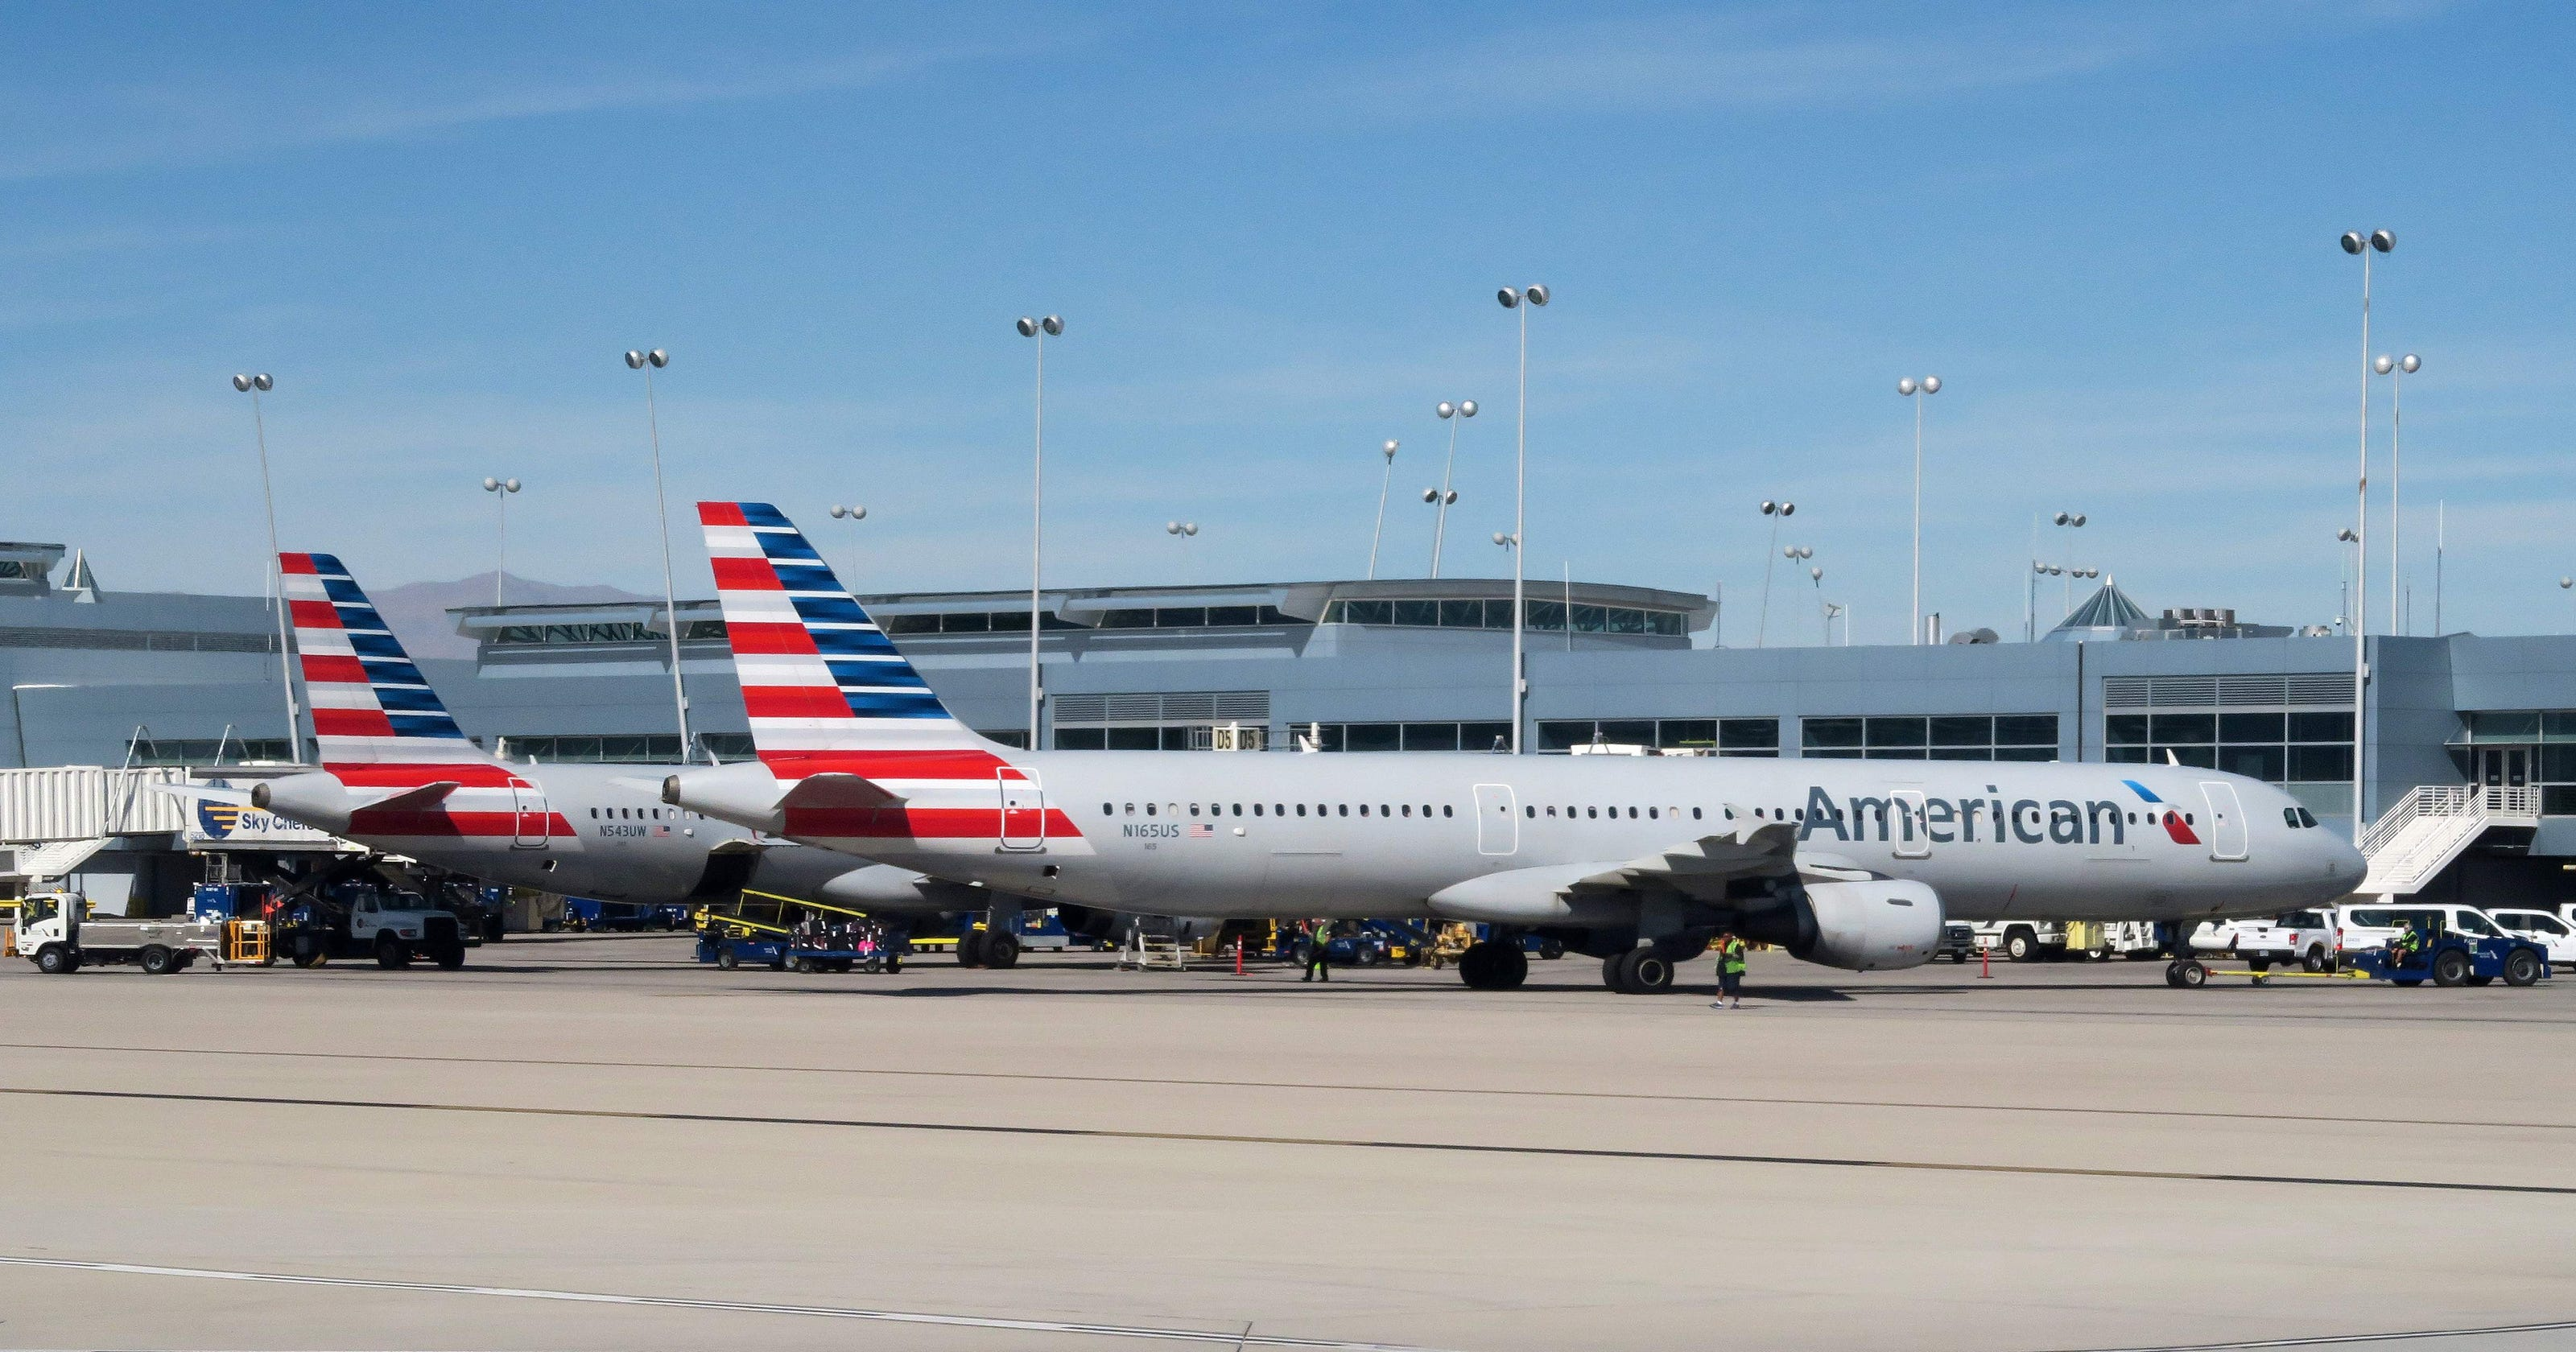 Severe Turbulence Injures 10 On American Airlines Flight